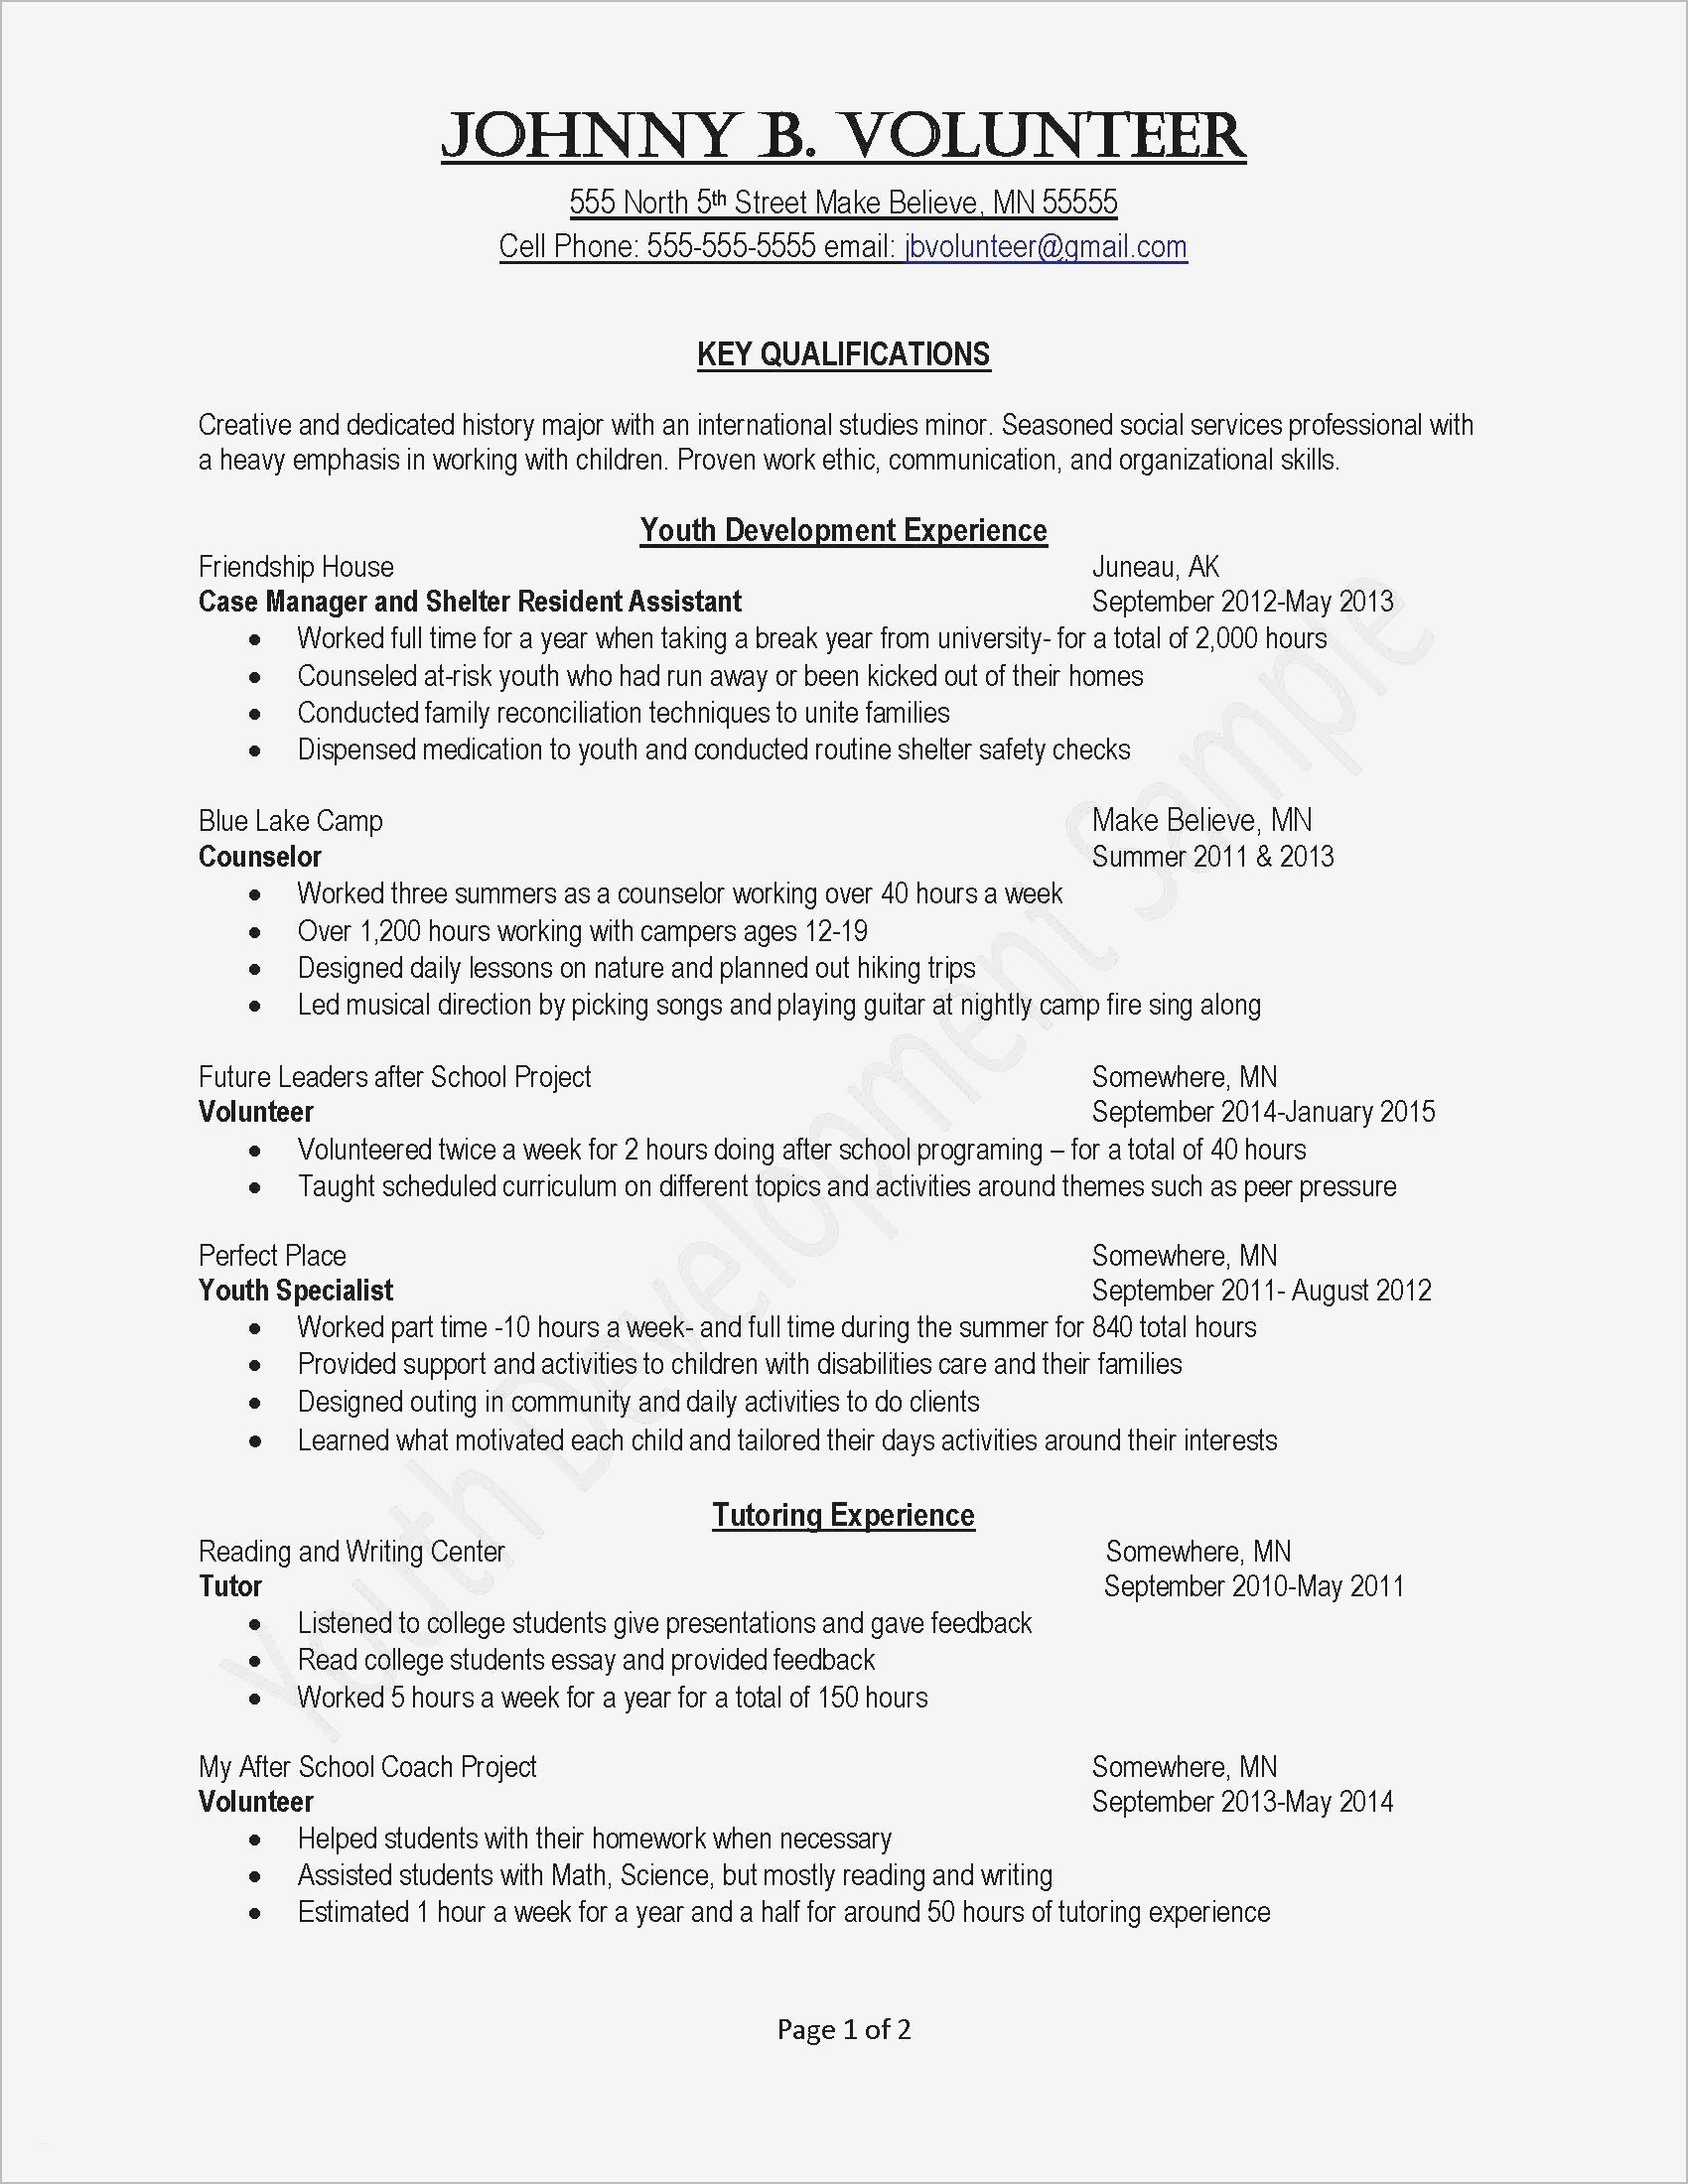 Cover Letter Template for It Job - Resume and Cover Letter Template Elegant Activities Resume Template